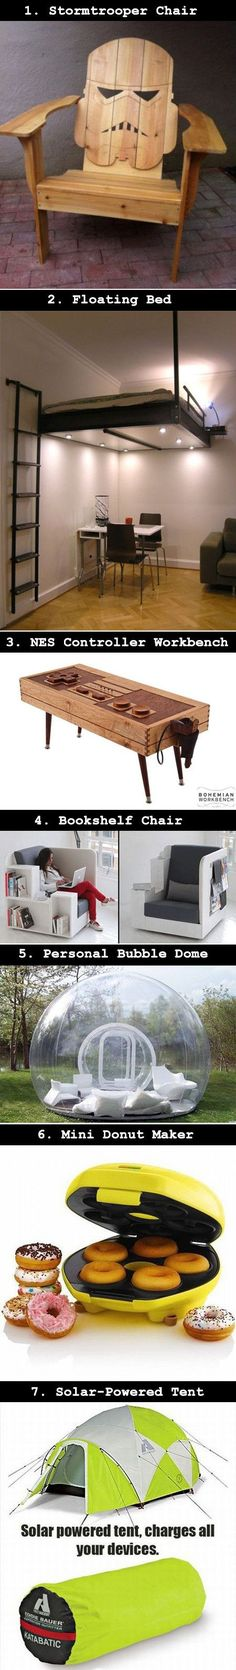 I want most of these things! Not really the game table or storyteller chair